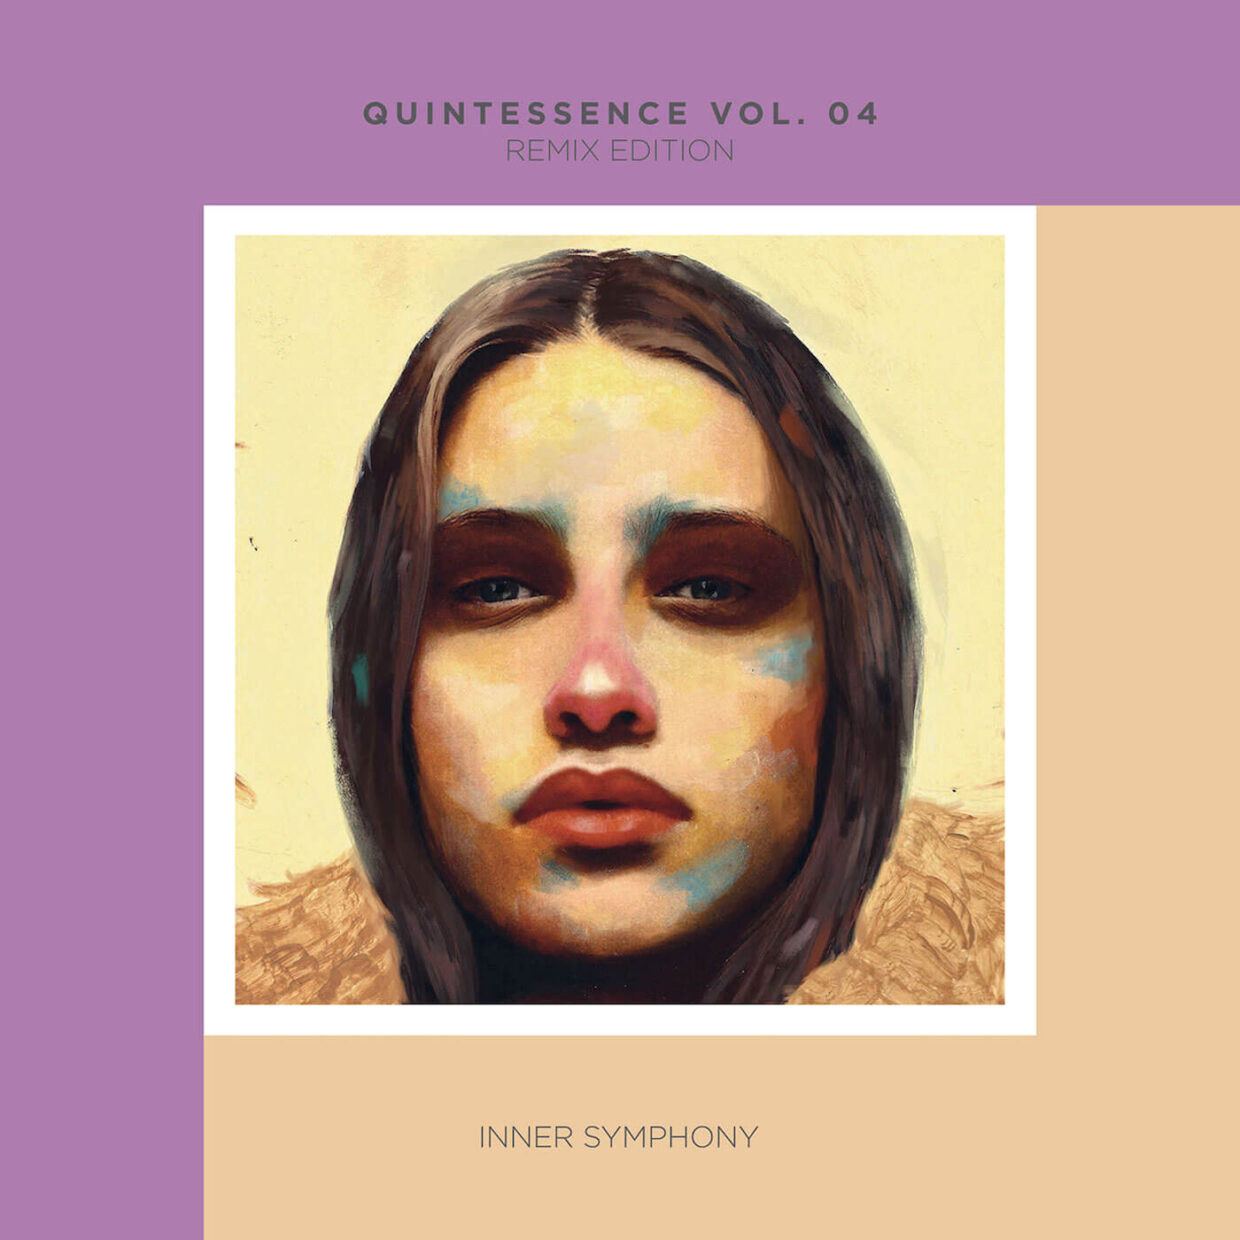 IS043 Various Artists Quintessence Vol.4 Remix Edition Inner Symphony